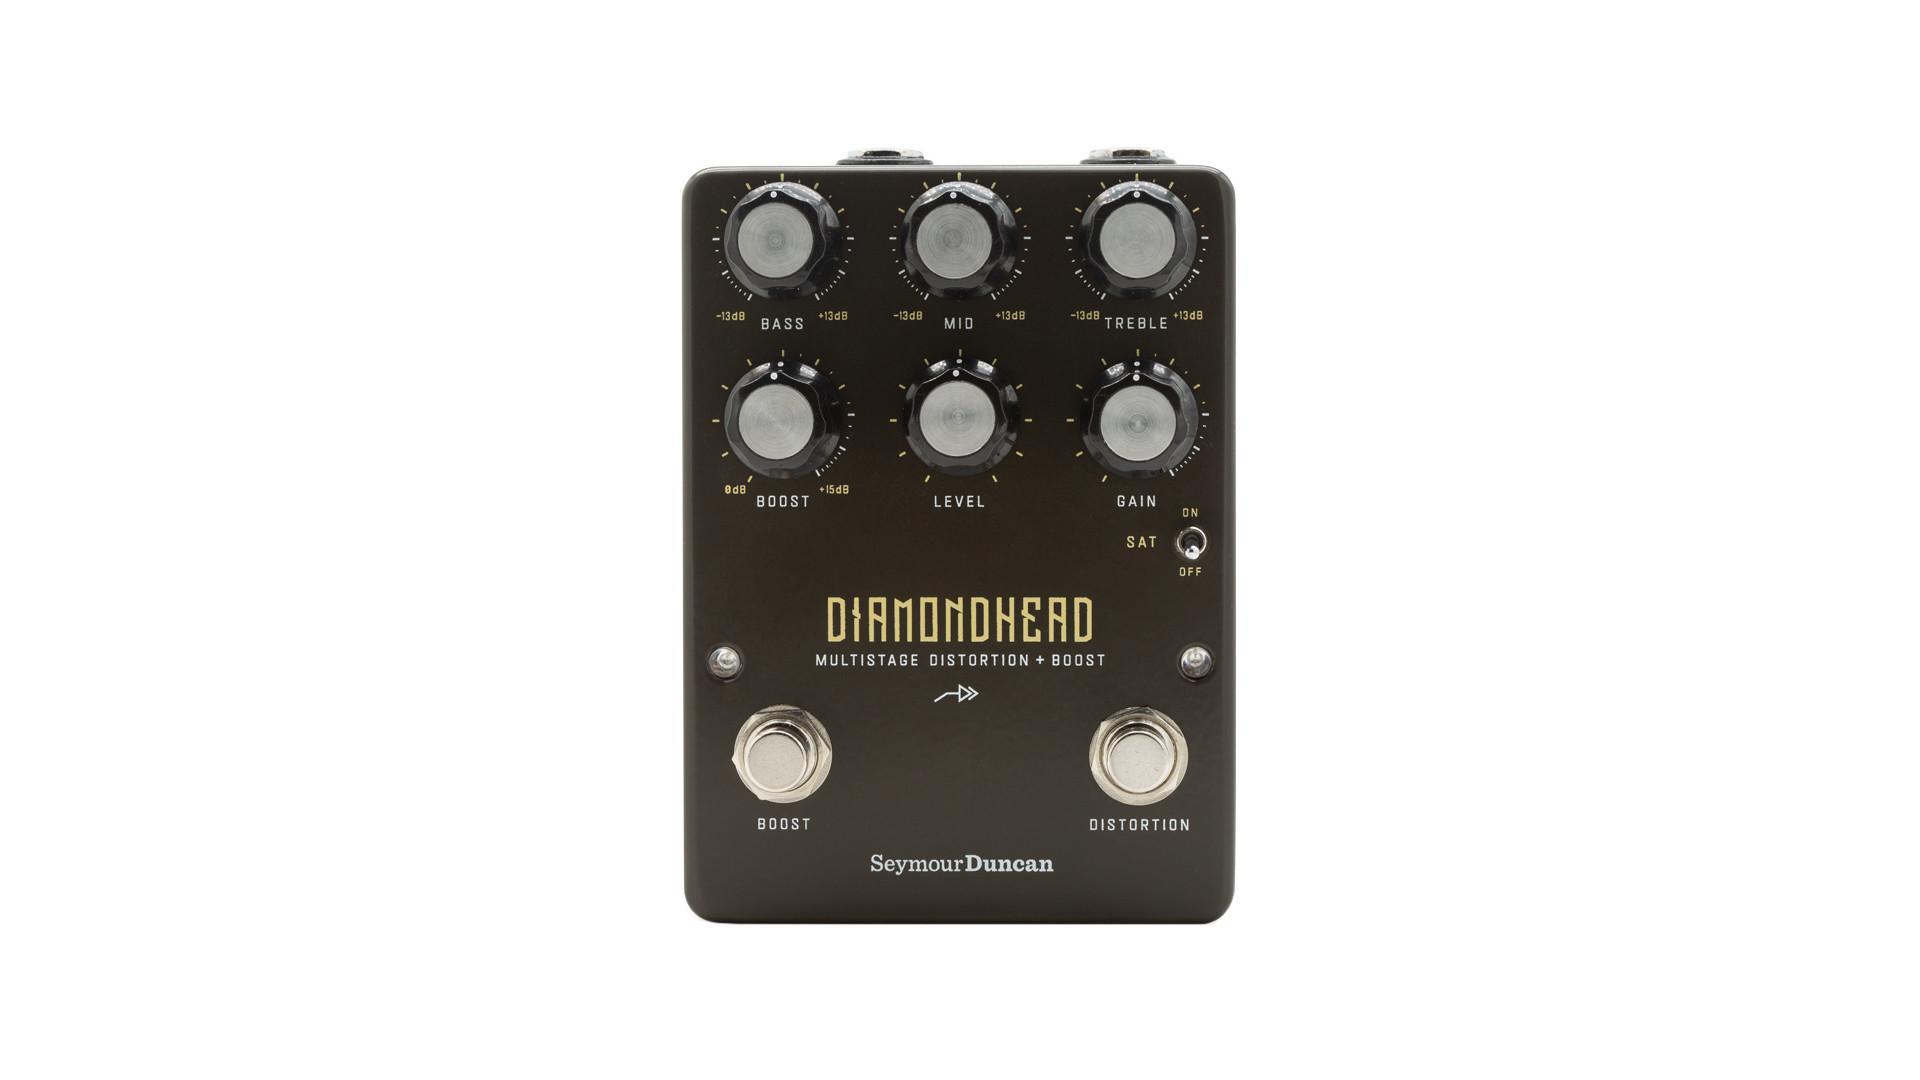 Seymour Duncan Diamondhead Multistage Distortion & Boost Pedal